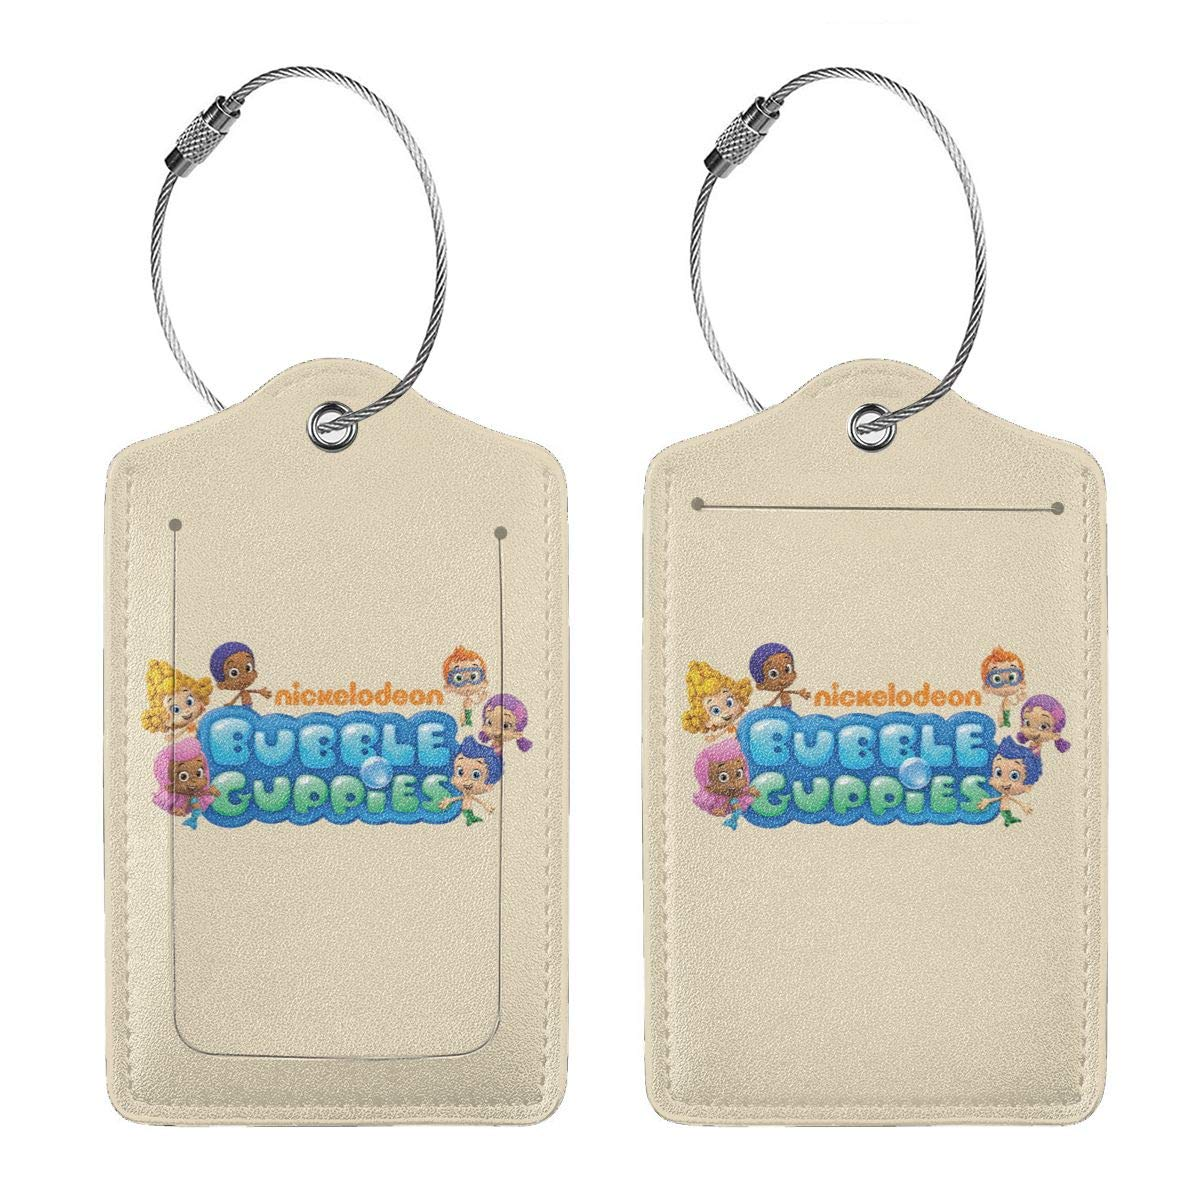 Bubble Guppies Logo Leather Luggage Tag Travel ID Label For Baggage Suitcase